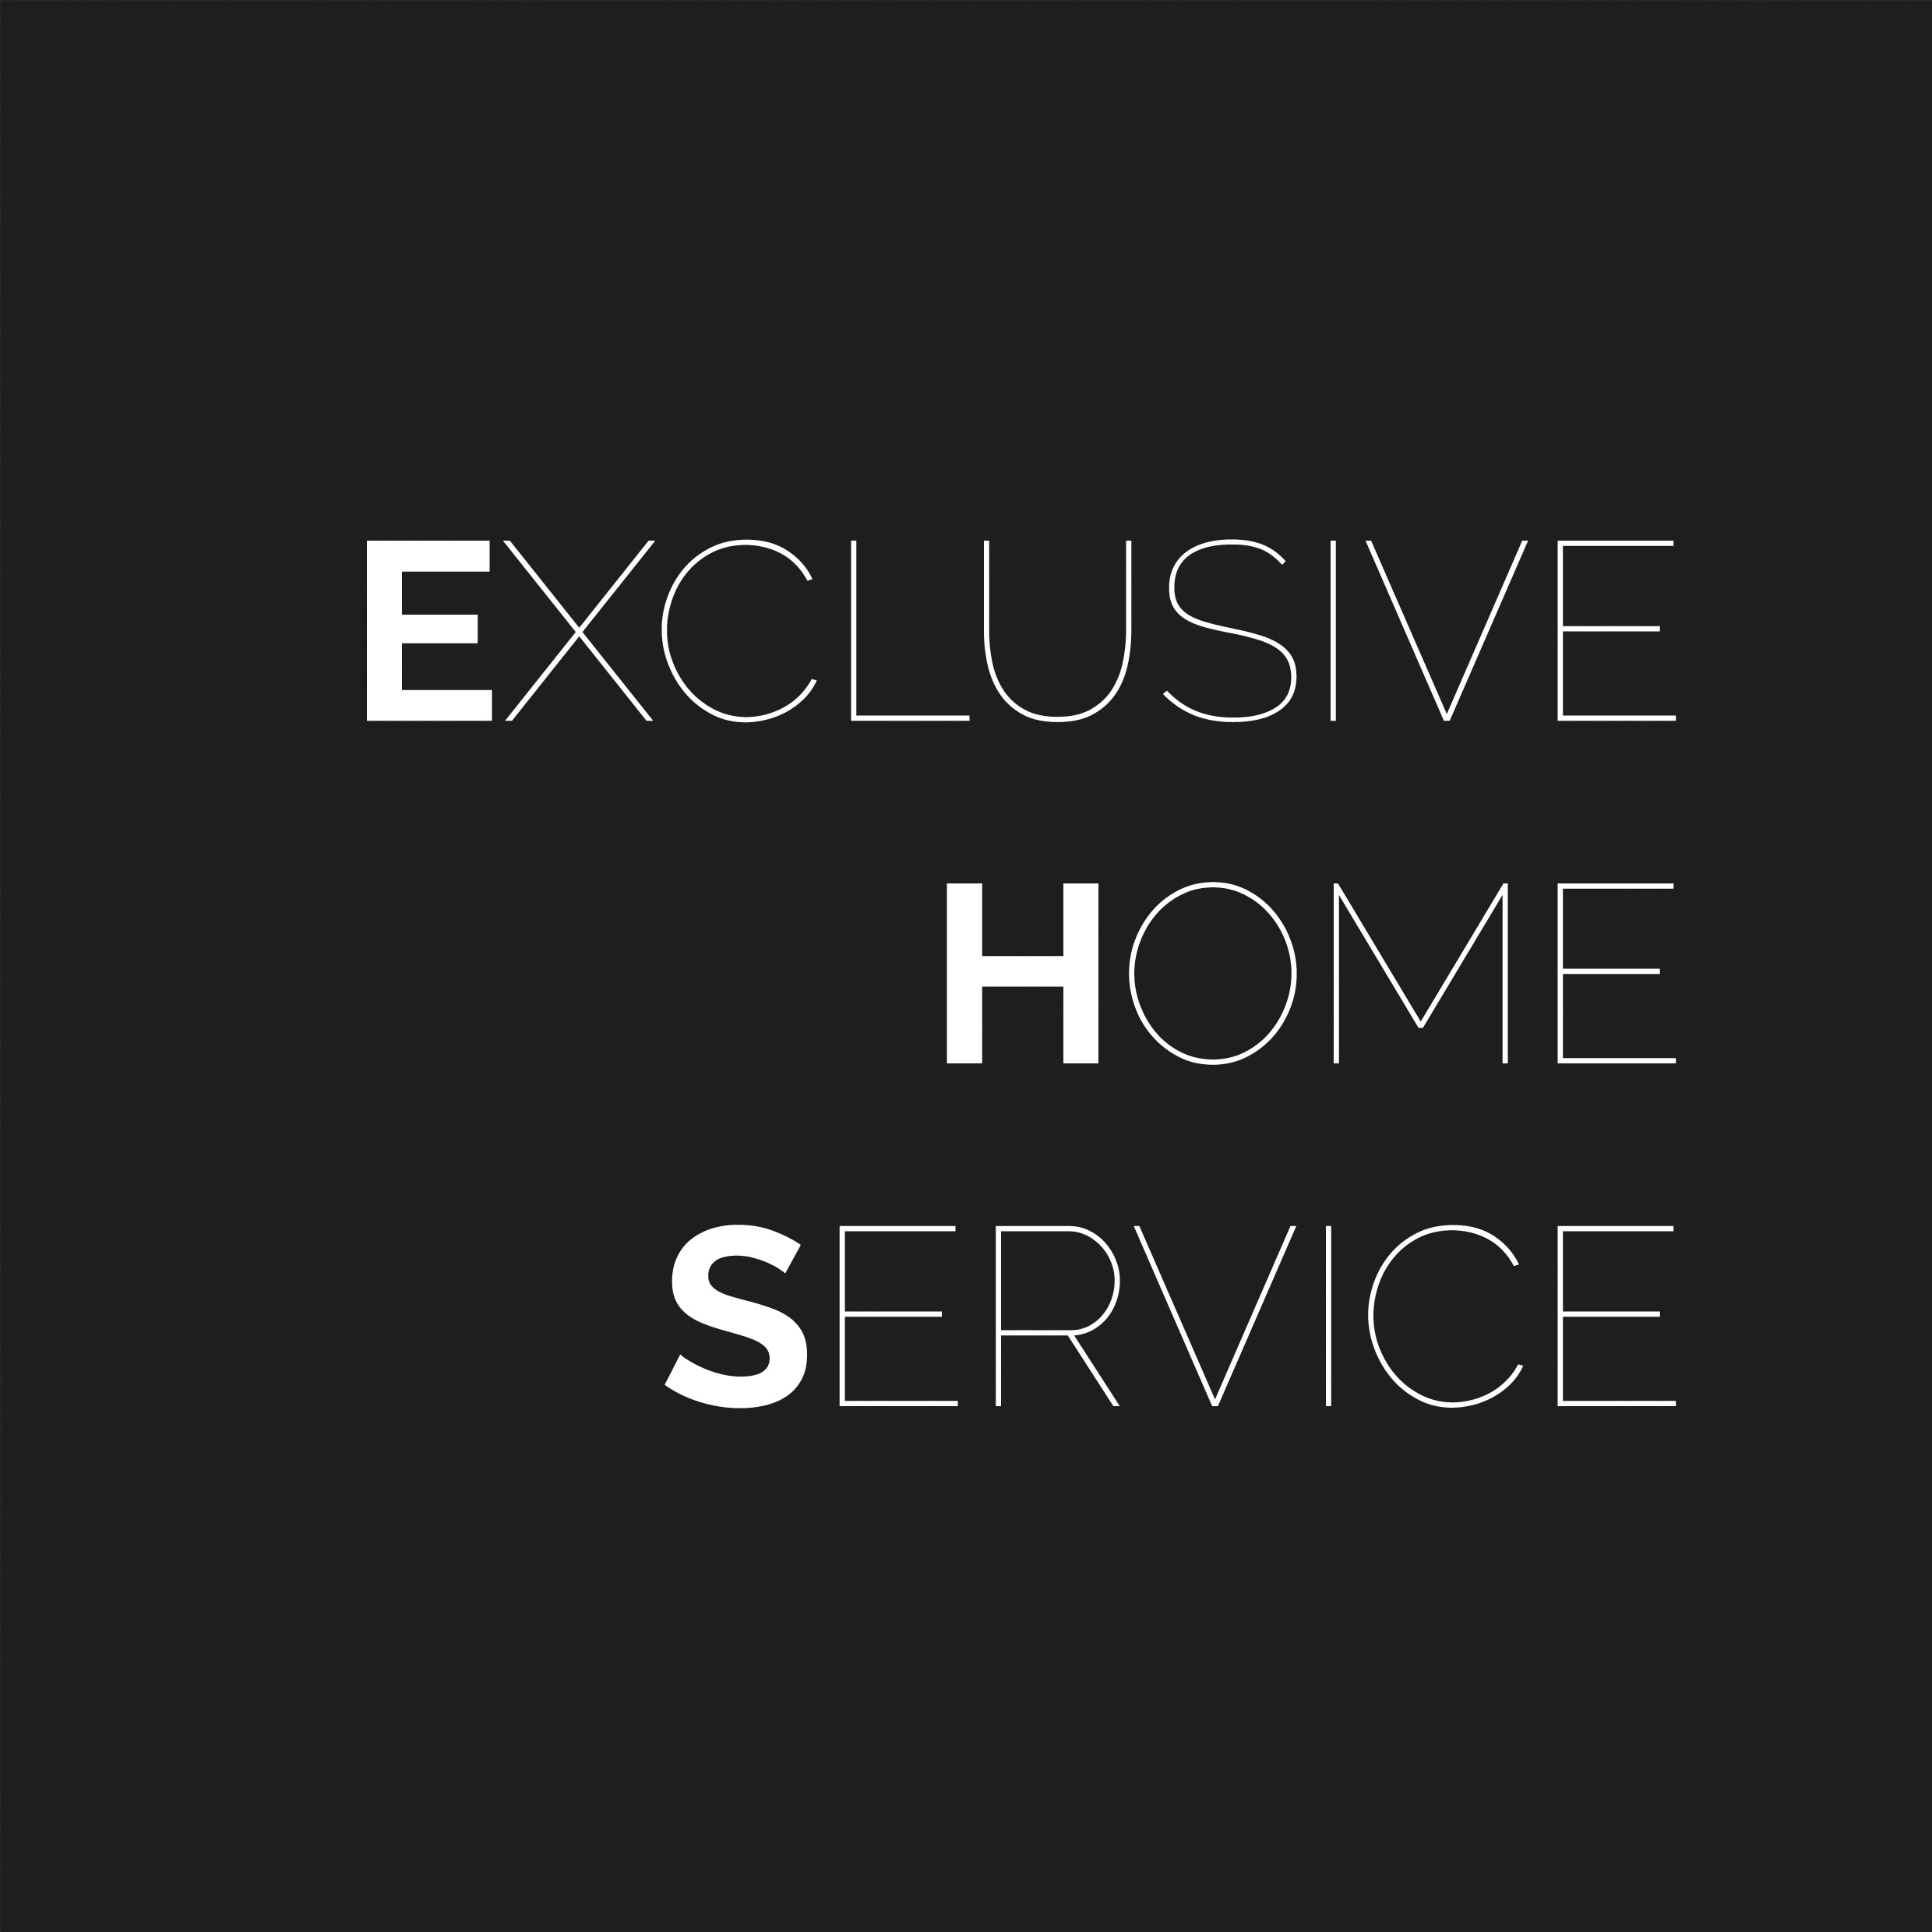 Exclusive Home Service